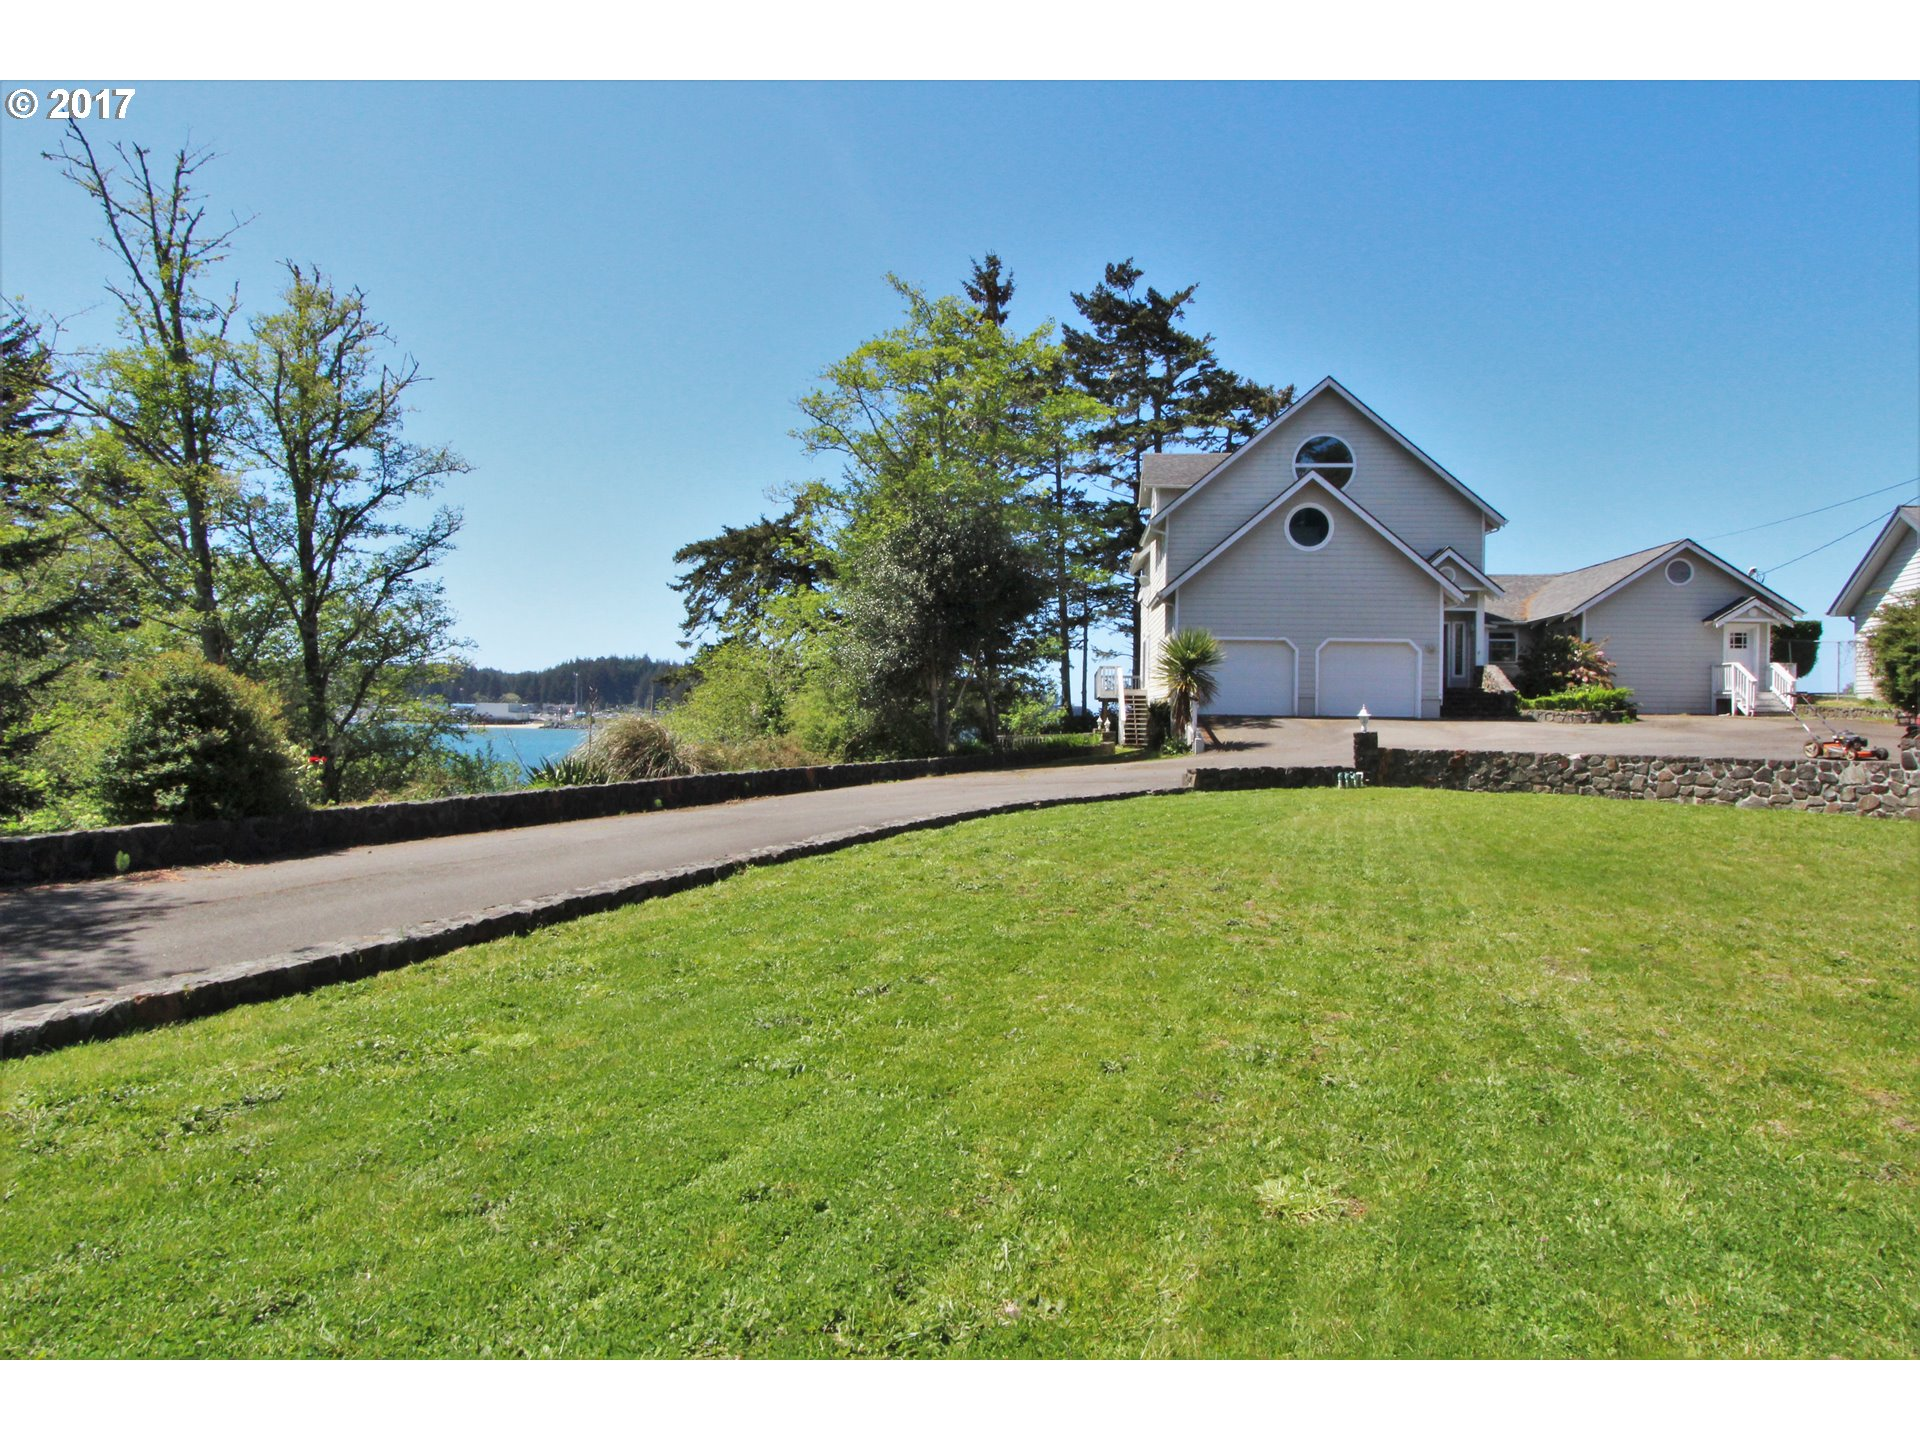 3409 sq. ft 4 bedrooms 4 bathrooms  House For Sale,Coos Bay, OR